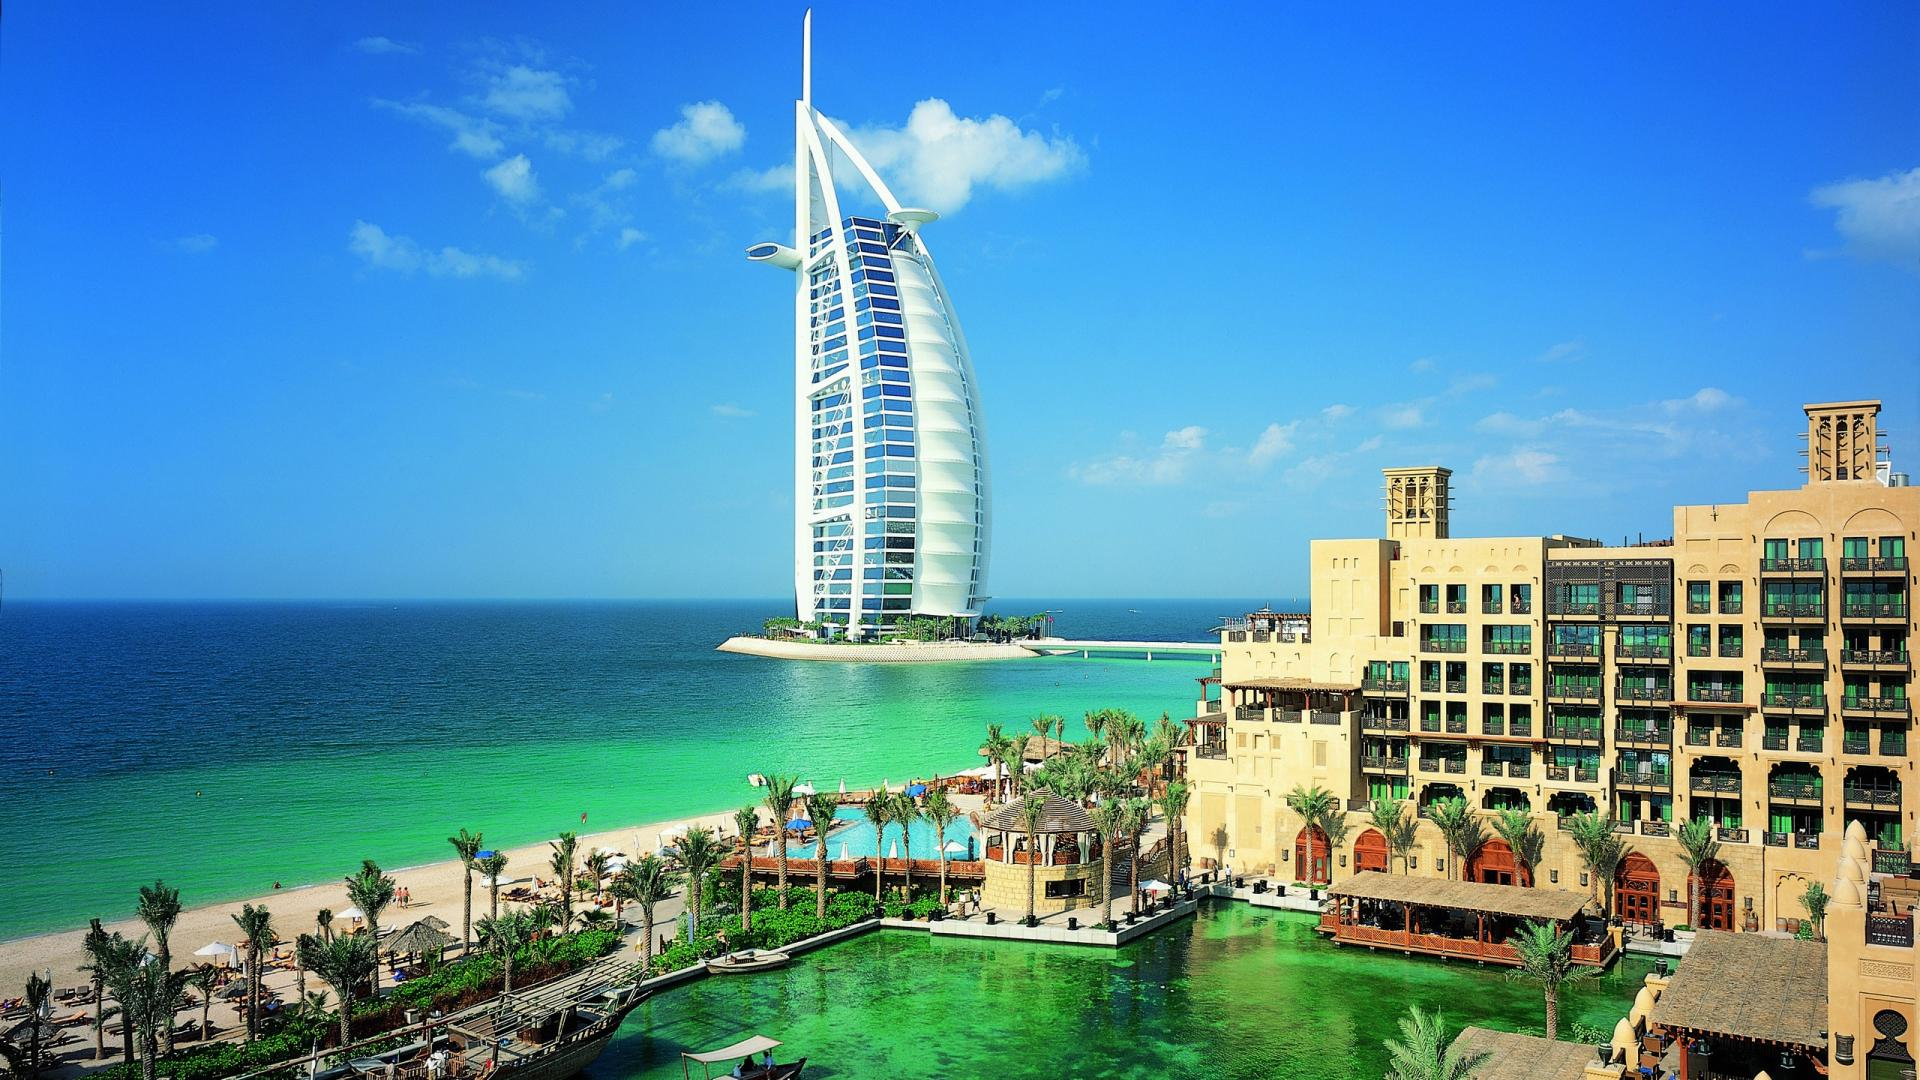 dubai-beach-cities-pictures-for-desktop